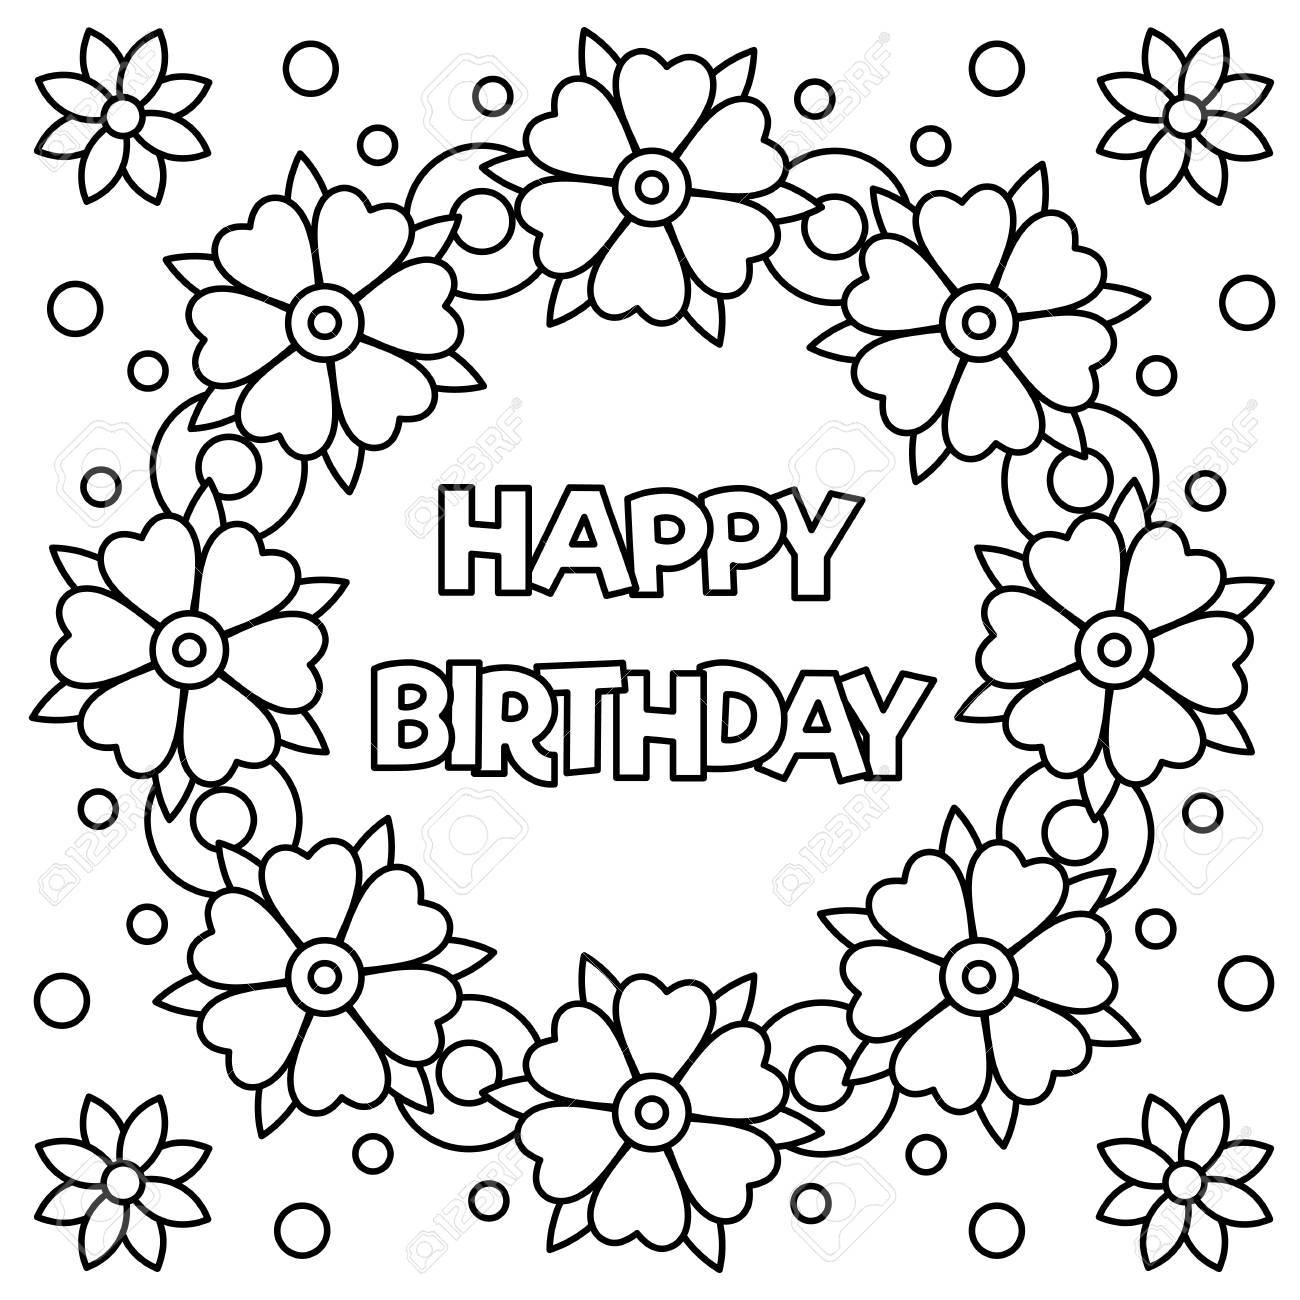 - Floral Wreath For Coloring Page With Happy Birthday. Vector